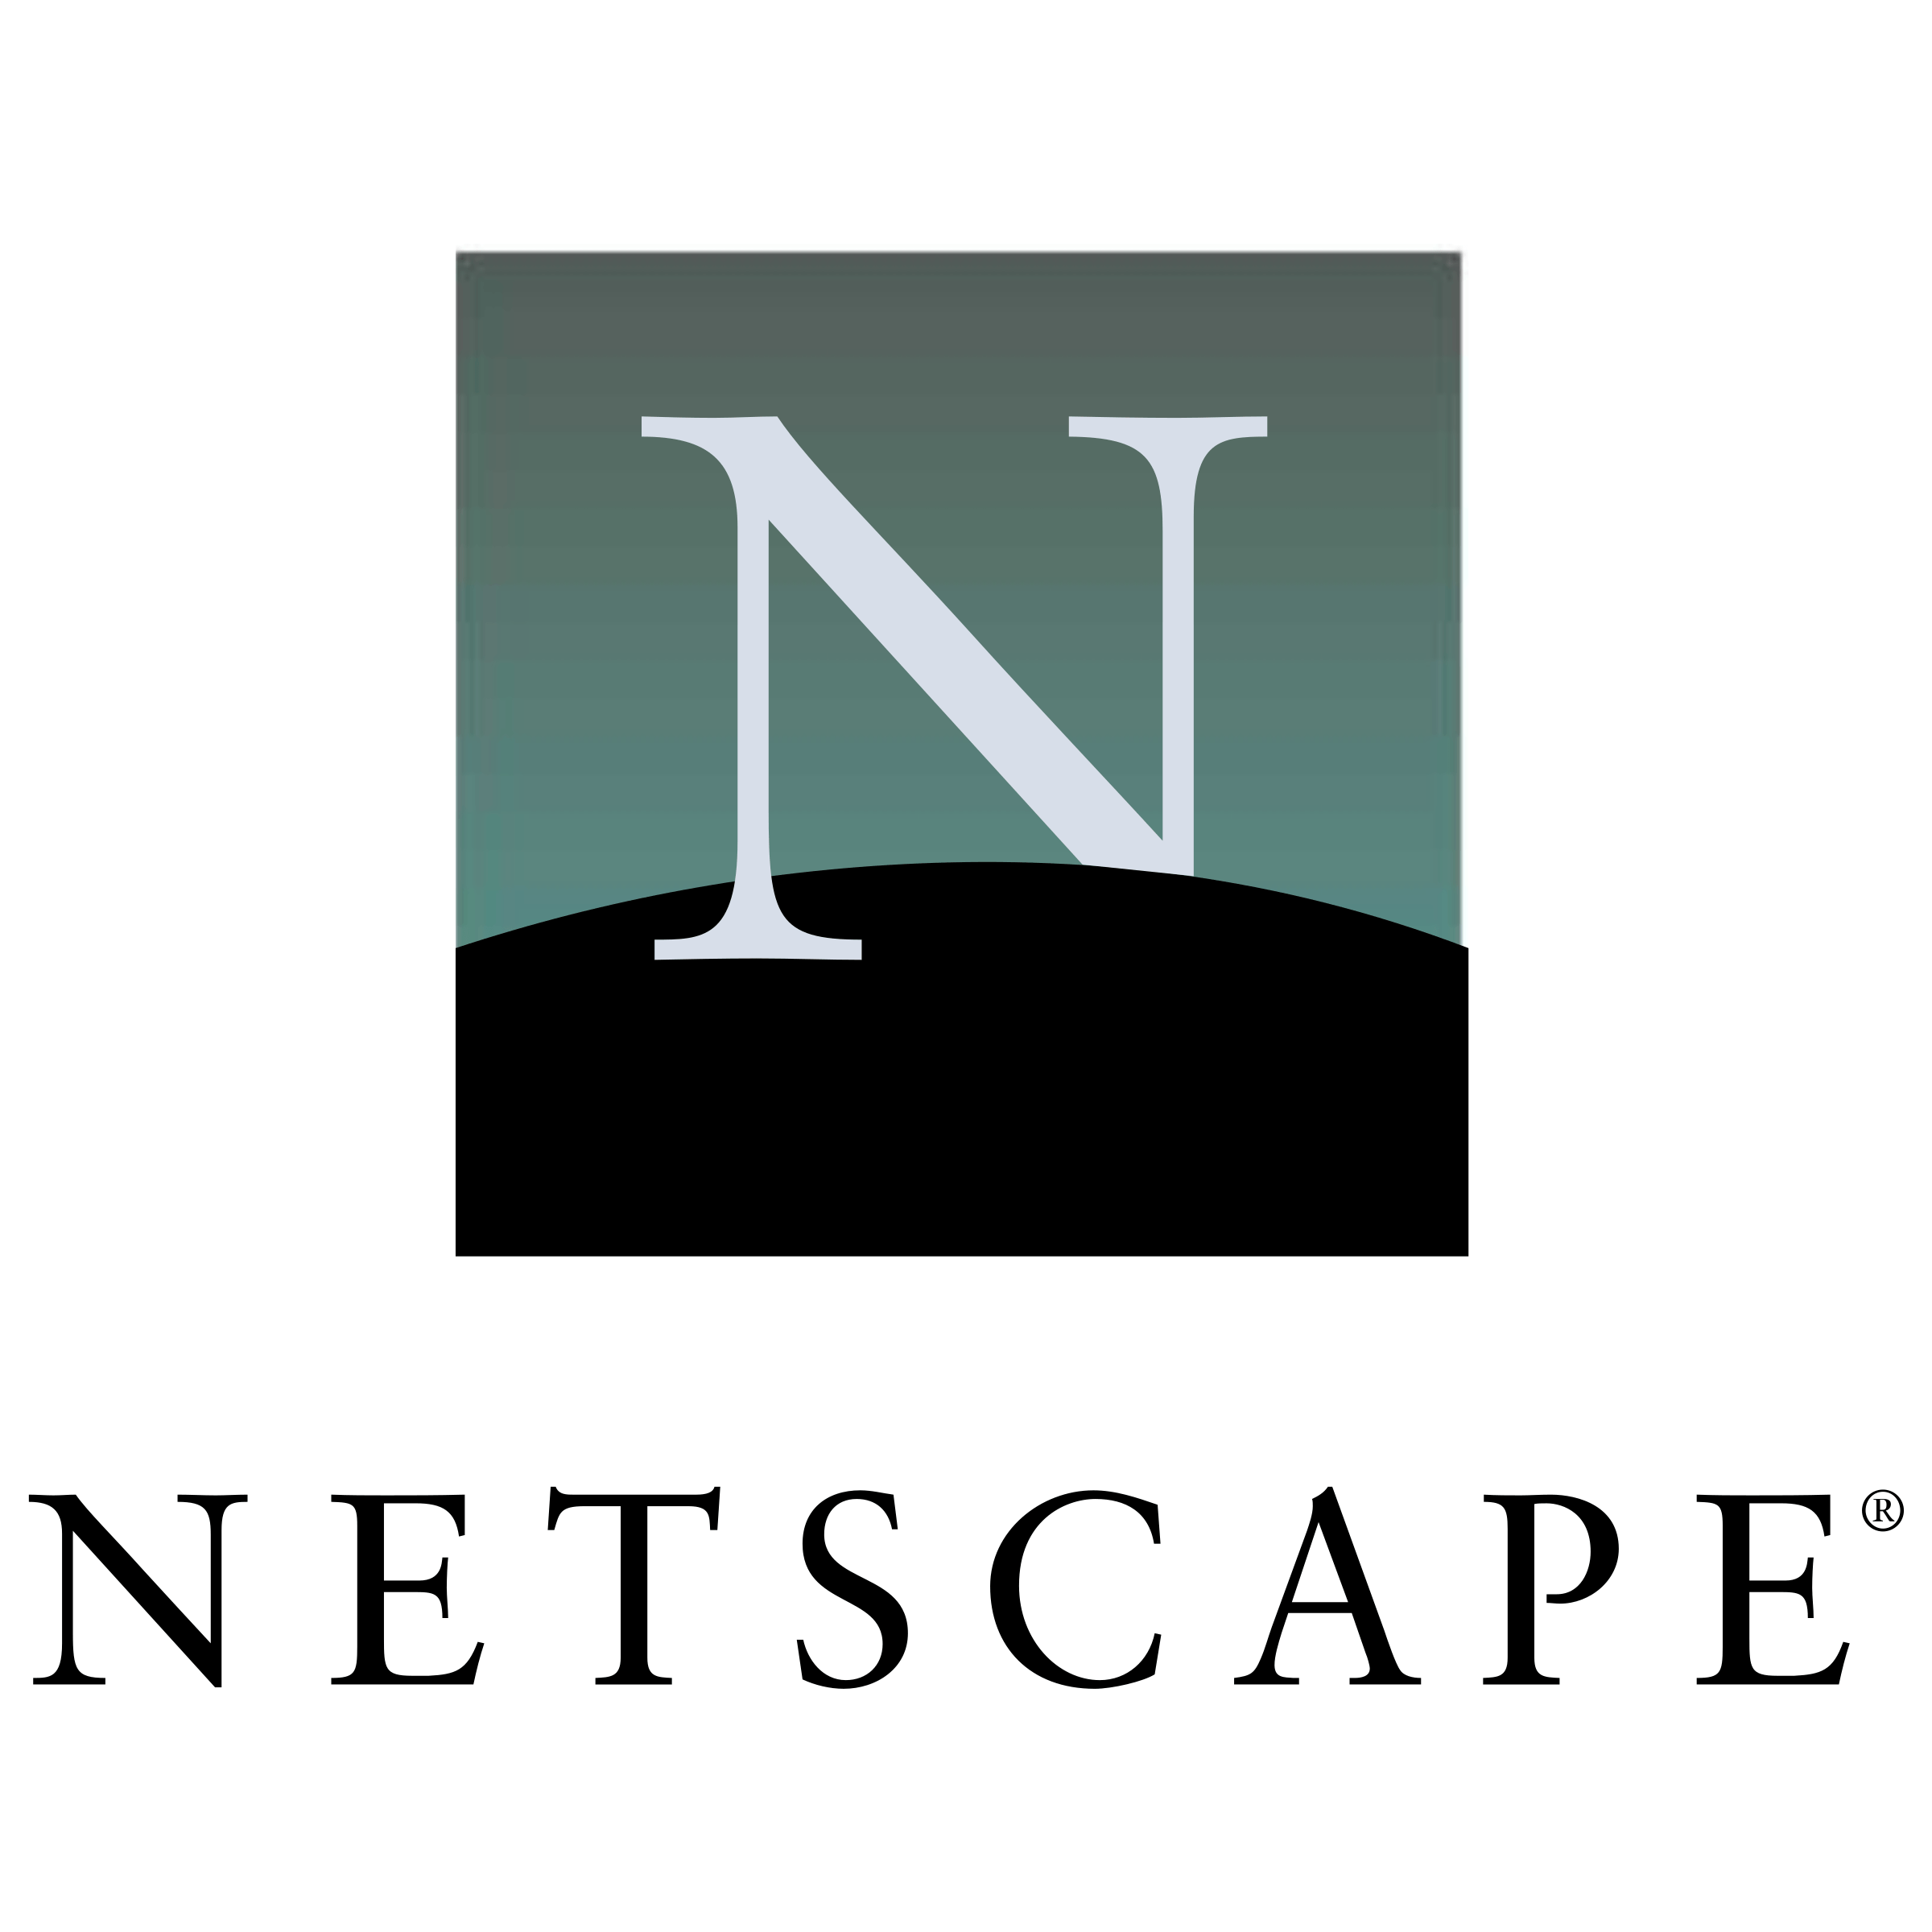 Netscape Logo - Netscape Logo PNG Transparent & SVG Vector - Freebie Supply